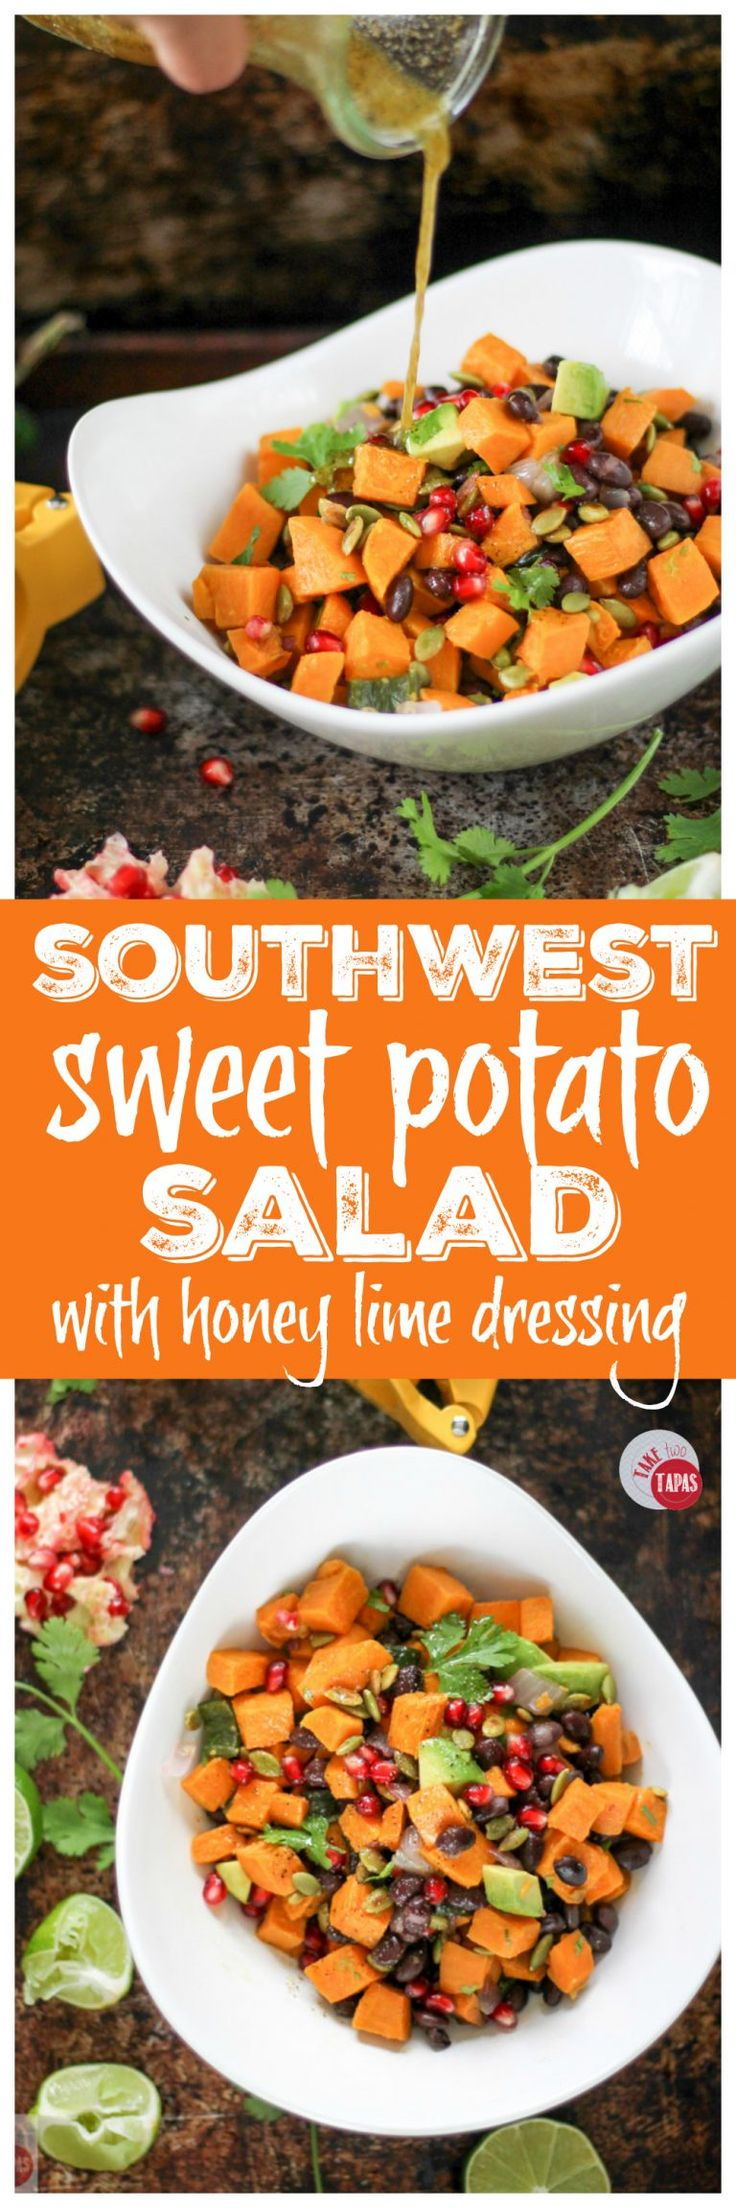 Sweet potatoes, black beans, and avocado make a power-packed salad for any season! Drizzled with a honey lime vinaigrette for a little tartness, this salad will make your tastebuds dance! Southwest Sweet Potato Salad with Honey Lime Vinaigrette Recipe   Take Two Tapas